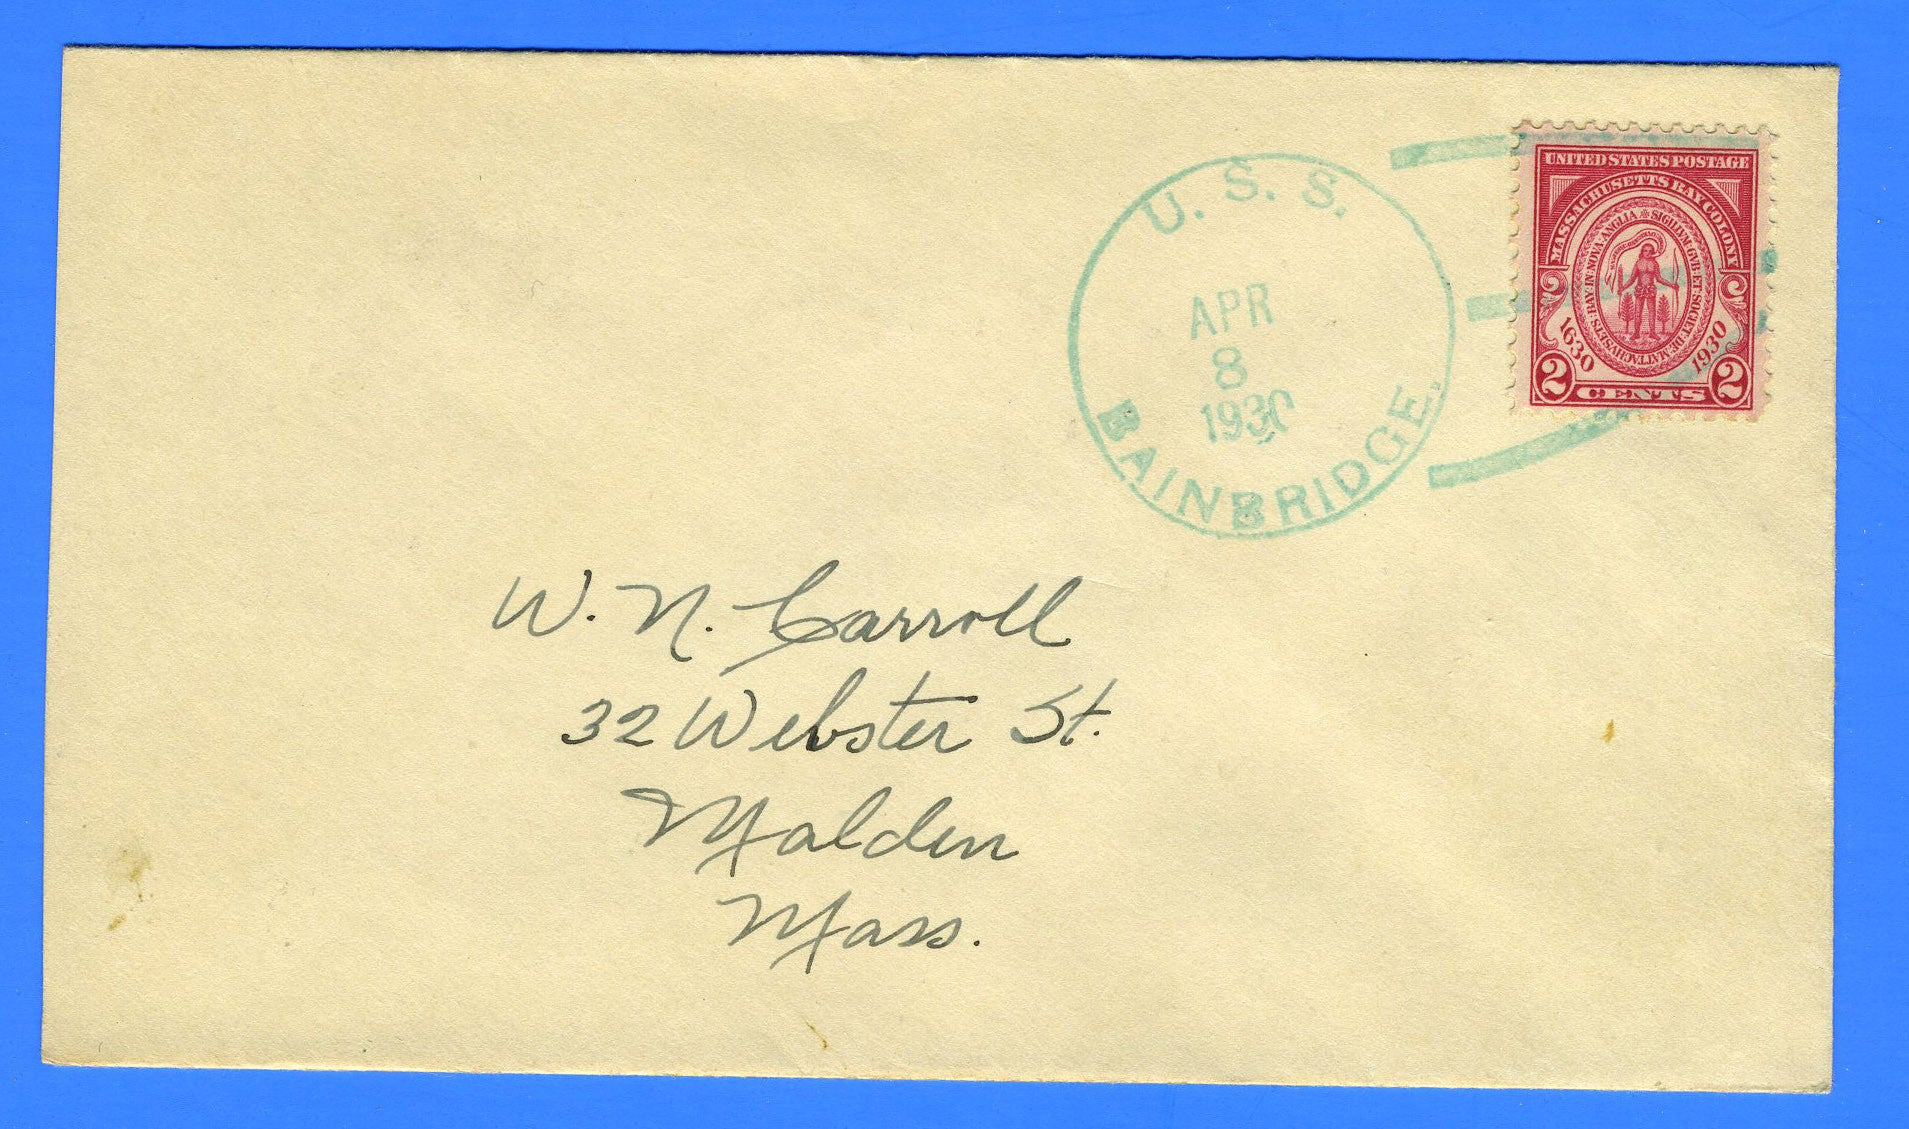 USS Bainbridge DD-246 April 8, 1930 - Scarce 3s (C) Cancel